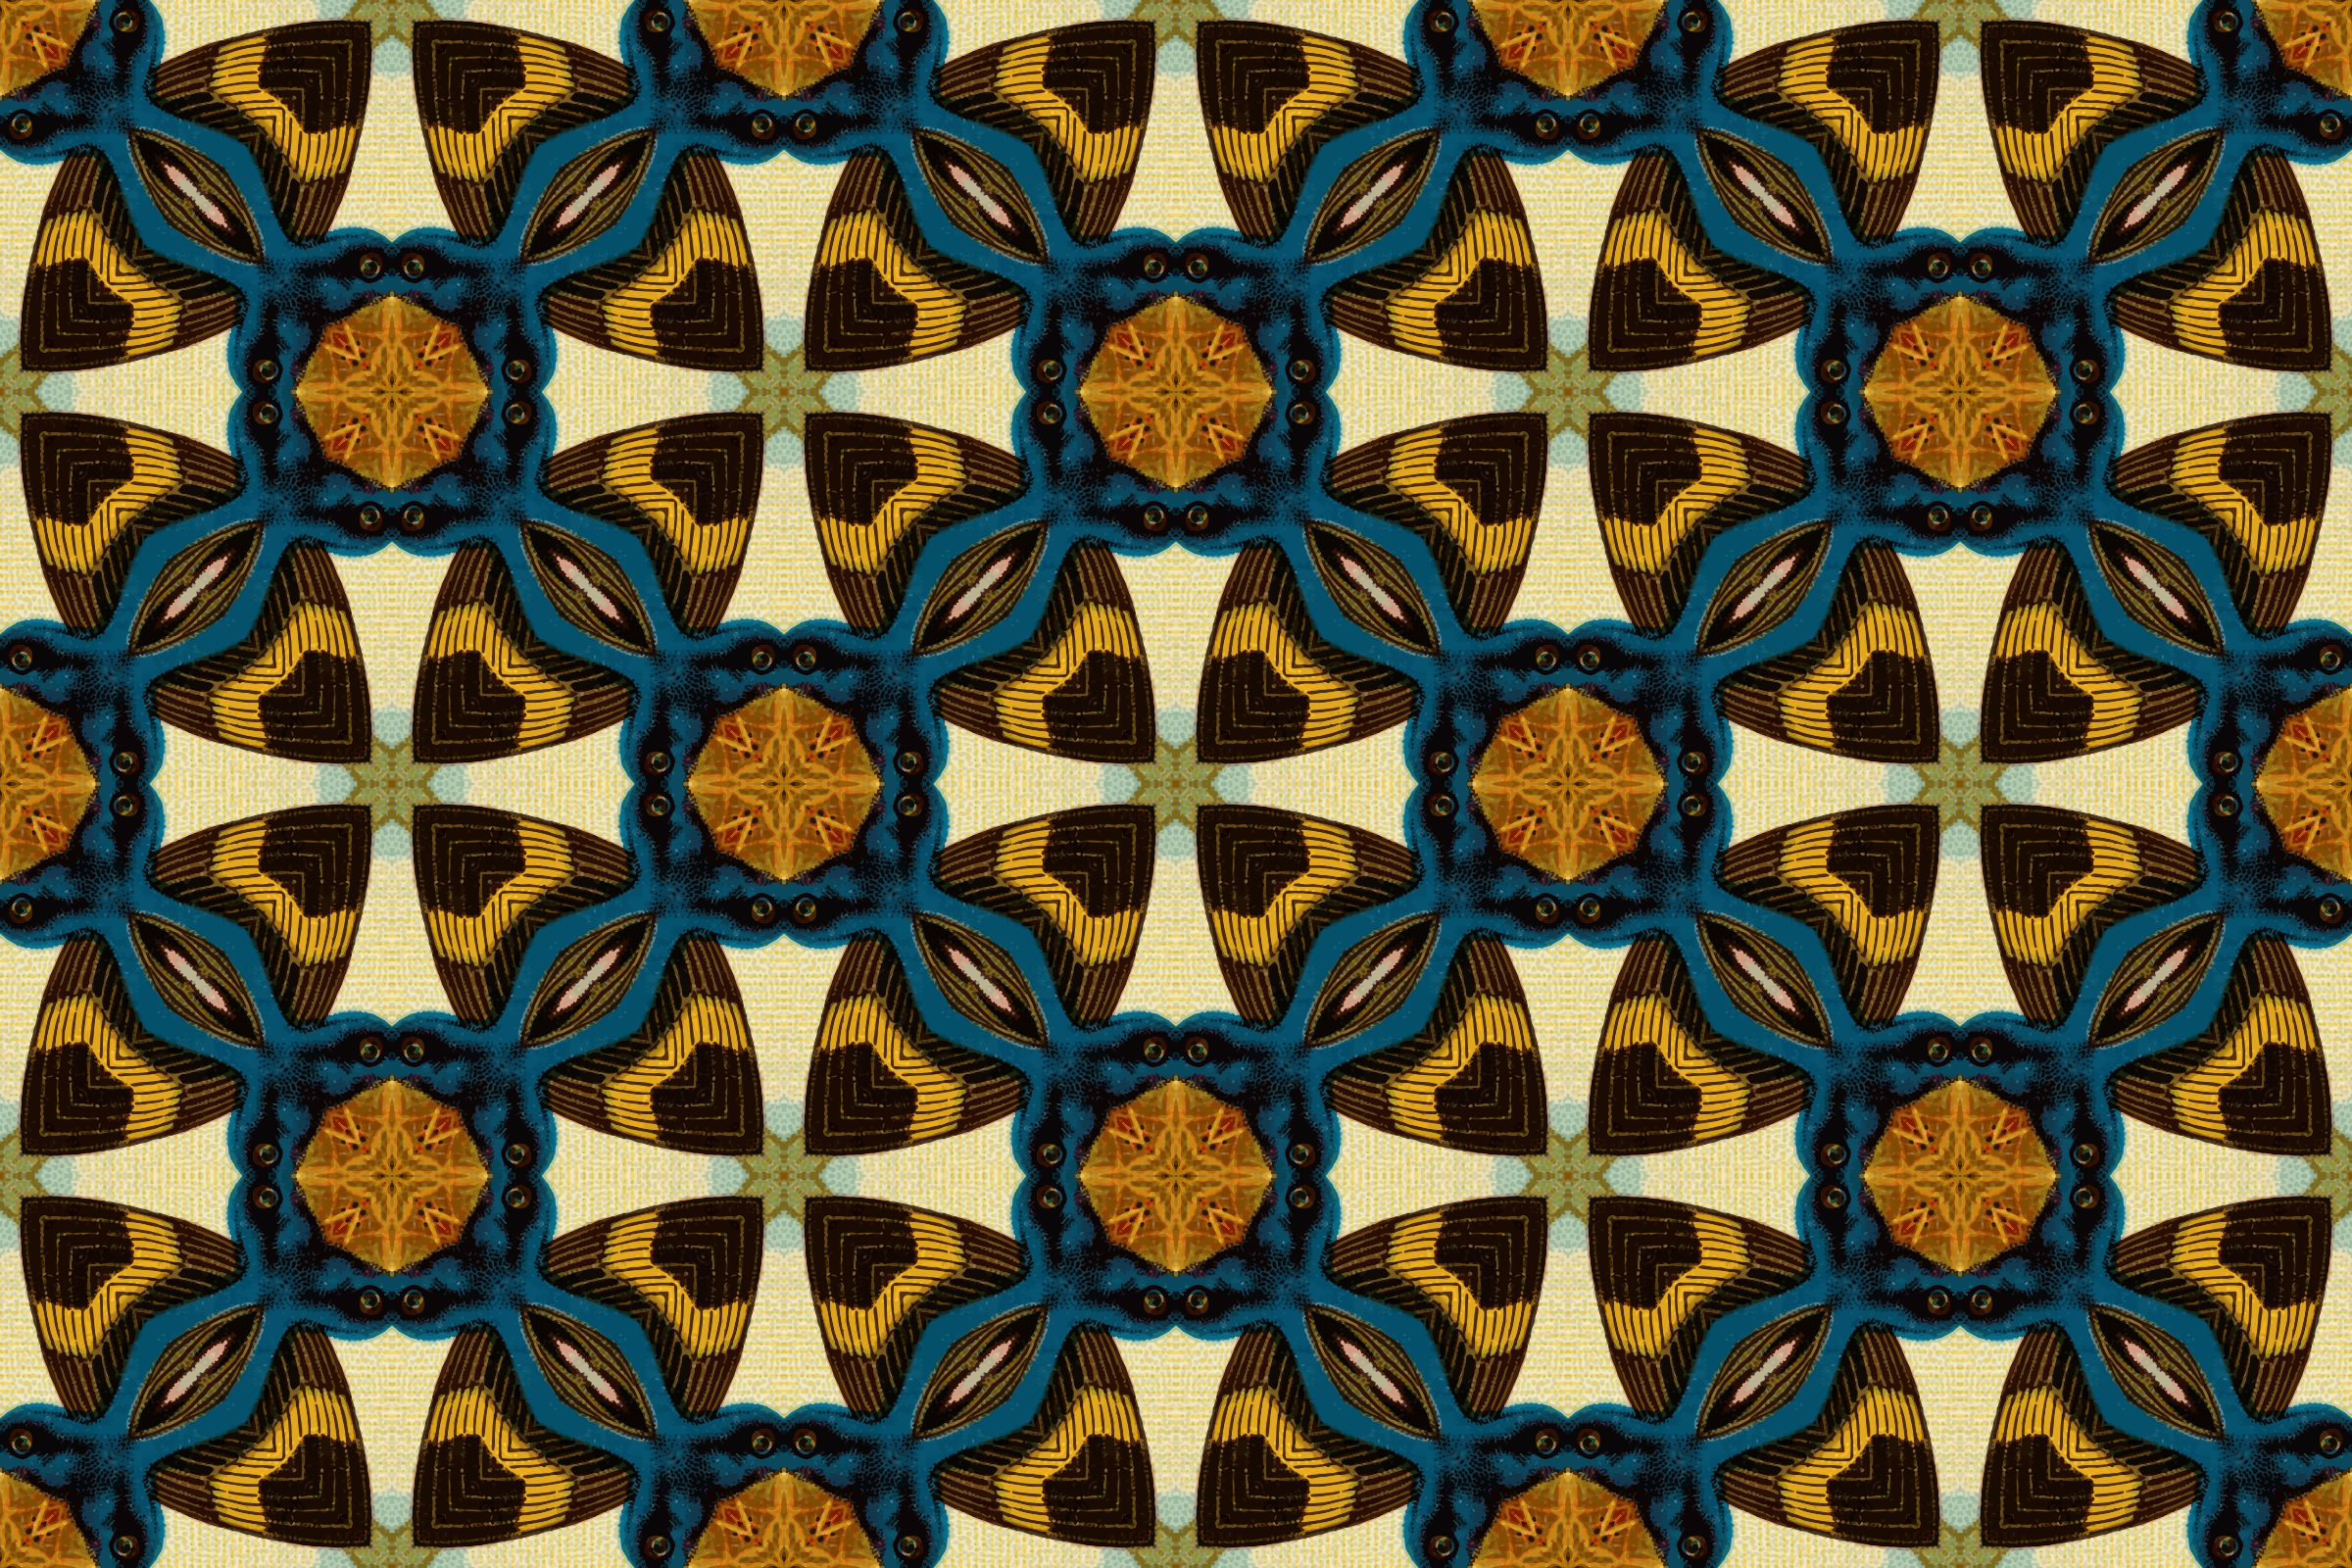 Background pattern 203 by Firkin